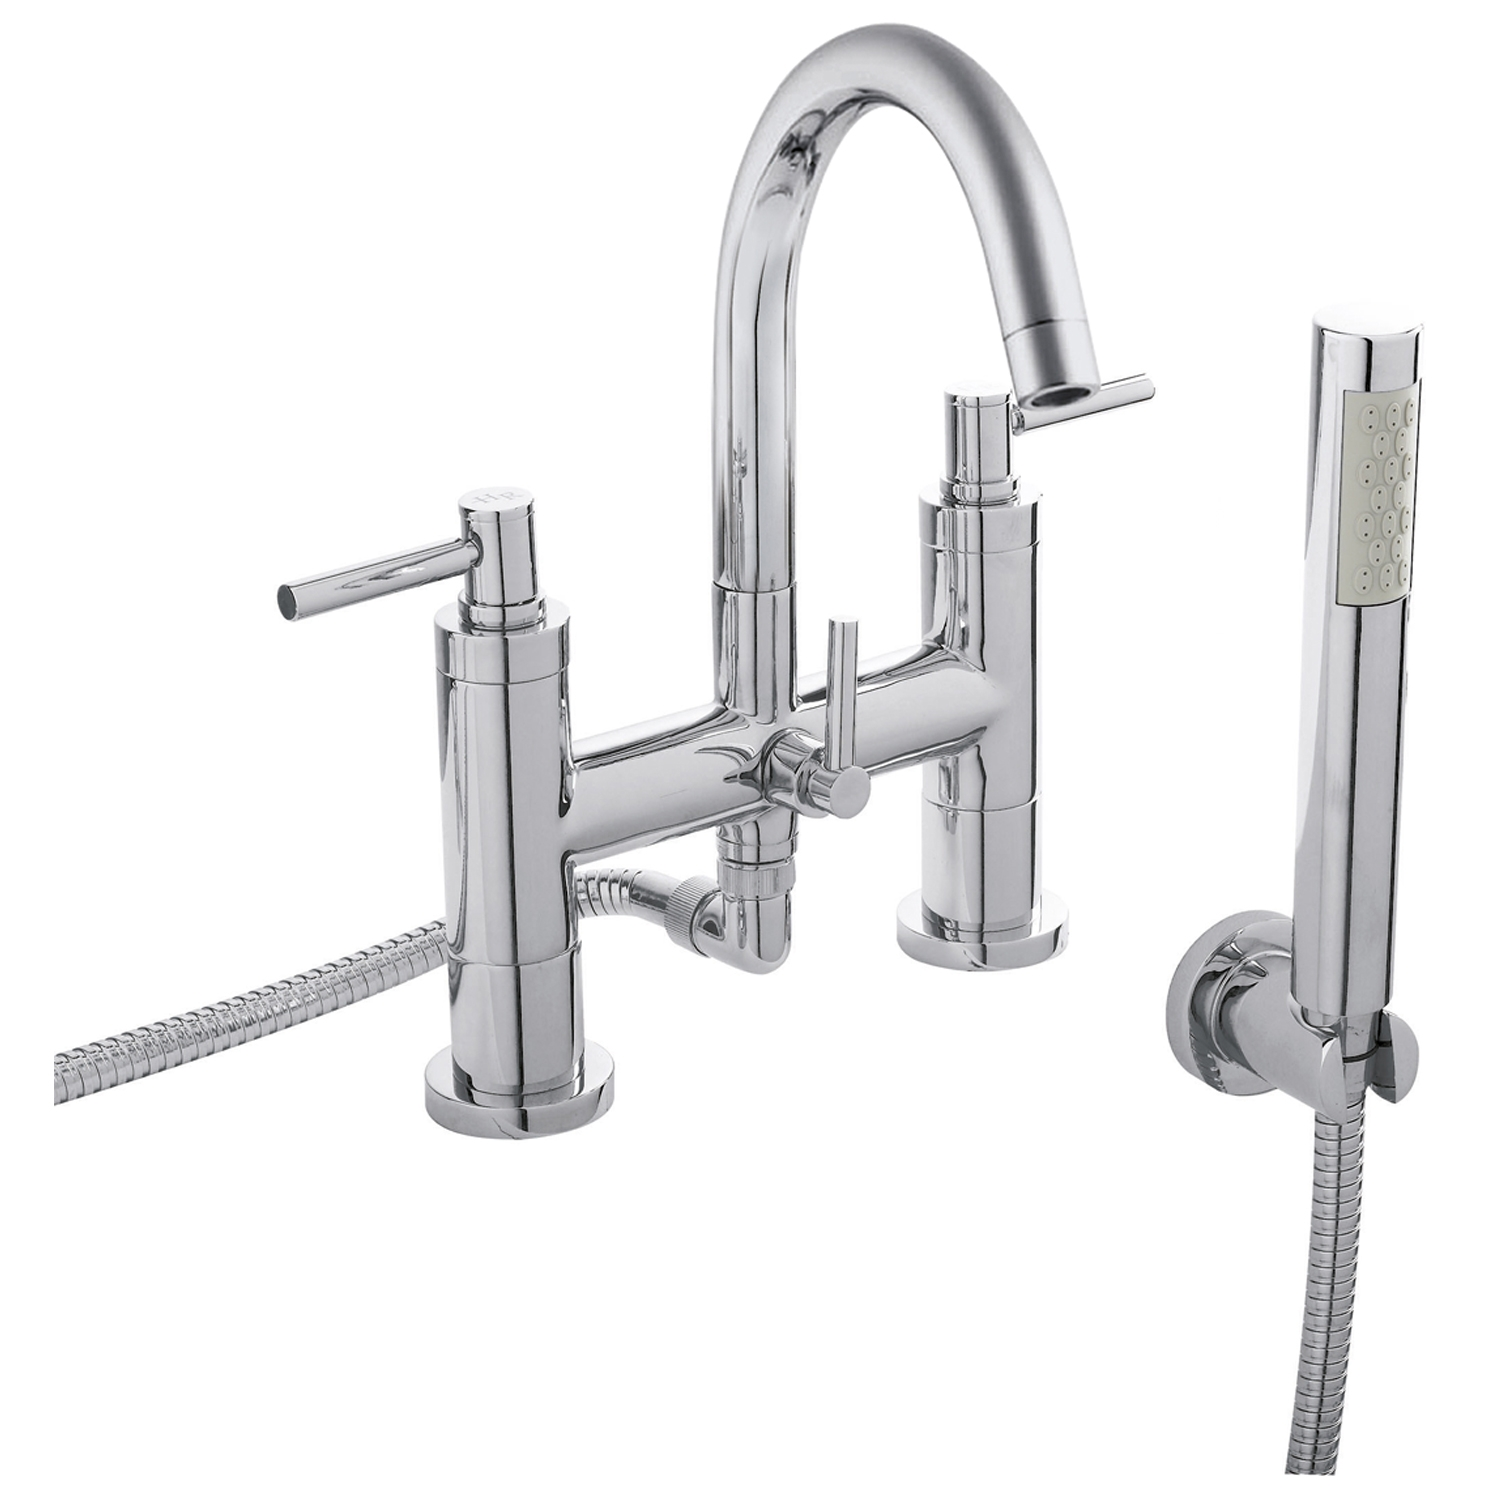 Hudson Reed Tec Lever Basin Mixer Tap and Bath Shower Mixer Tap, Chrome